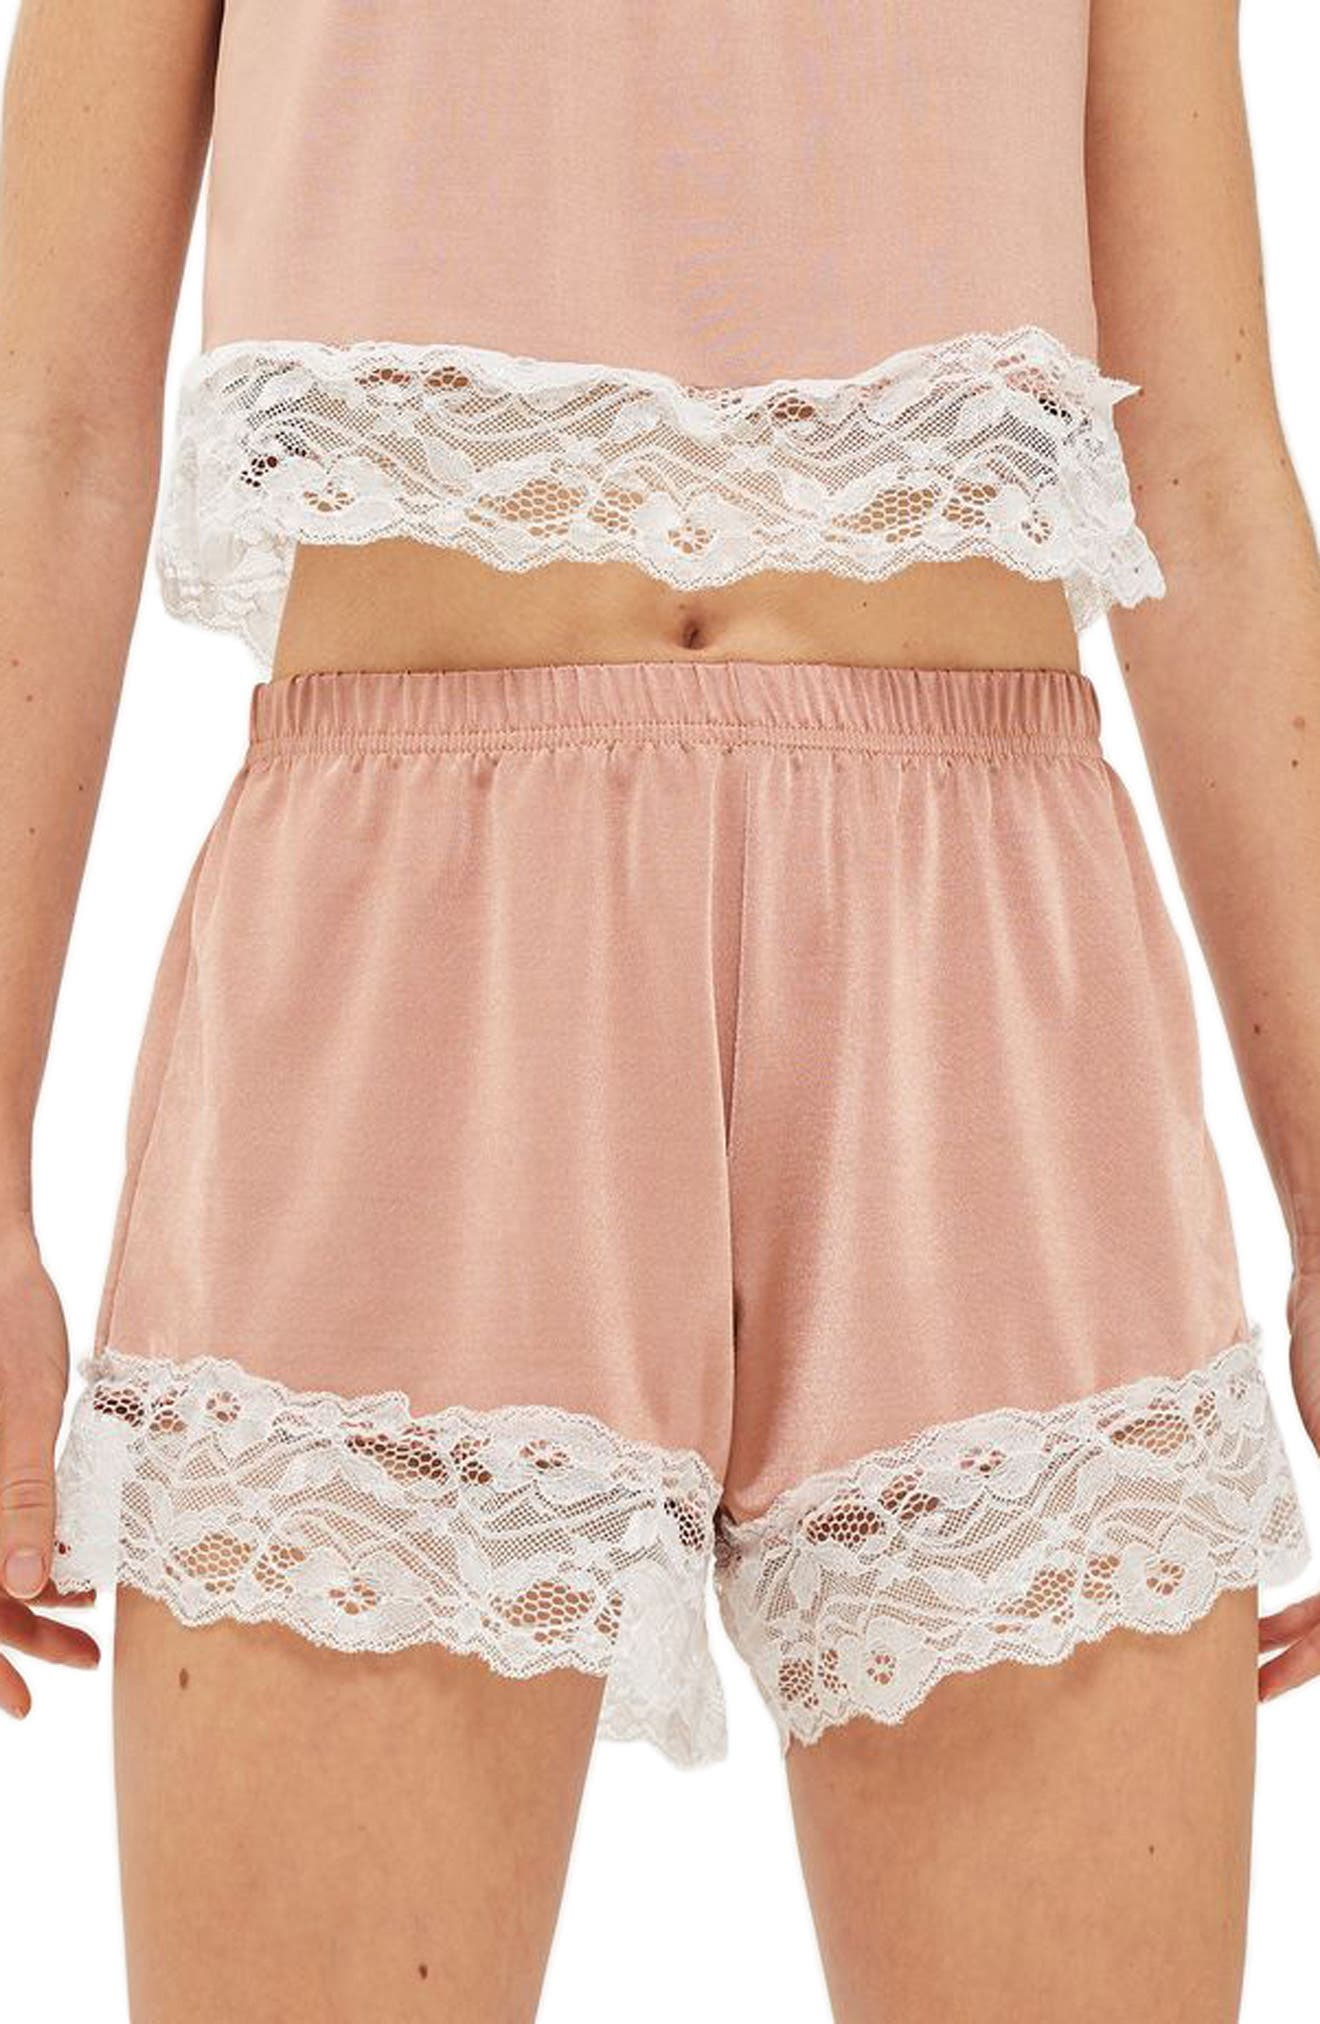 Satin & Lace Pajama Shorts,                             Main thumbnail 1, color,                             Nude